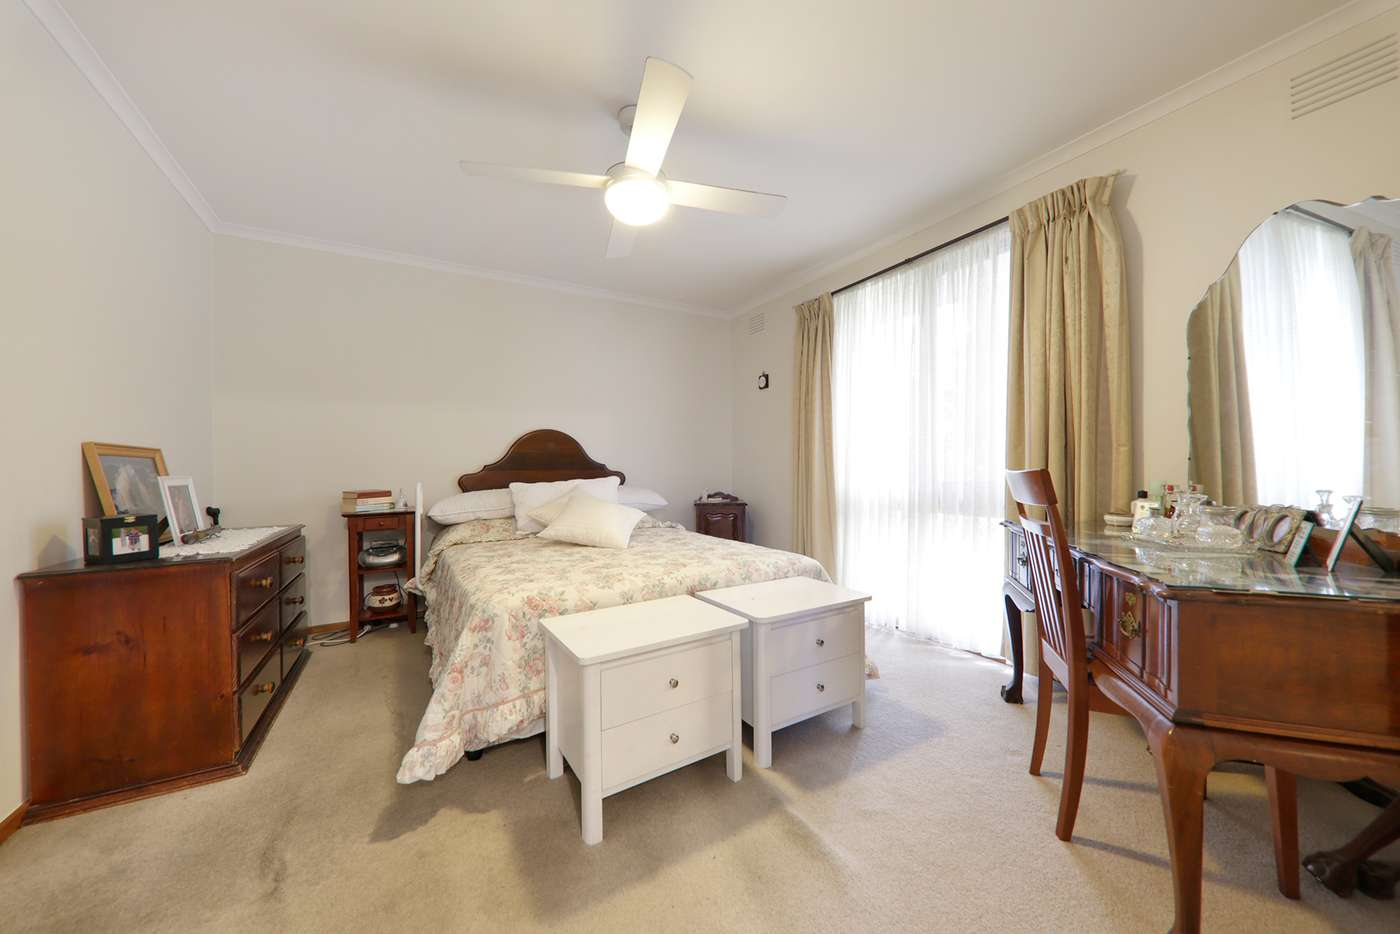 Sixth view of Homely house listing, 718 Wellington Road, Mulgrave VIC 3170